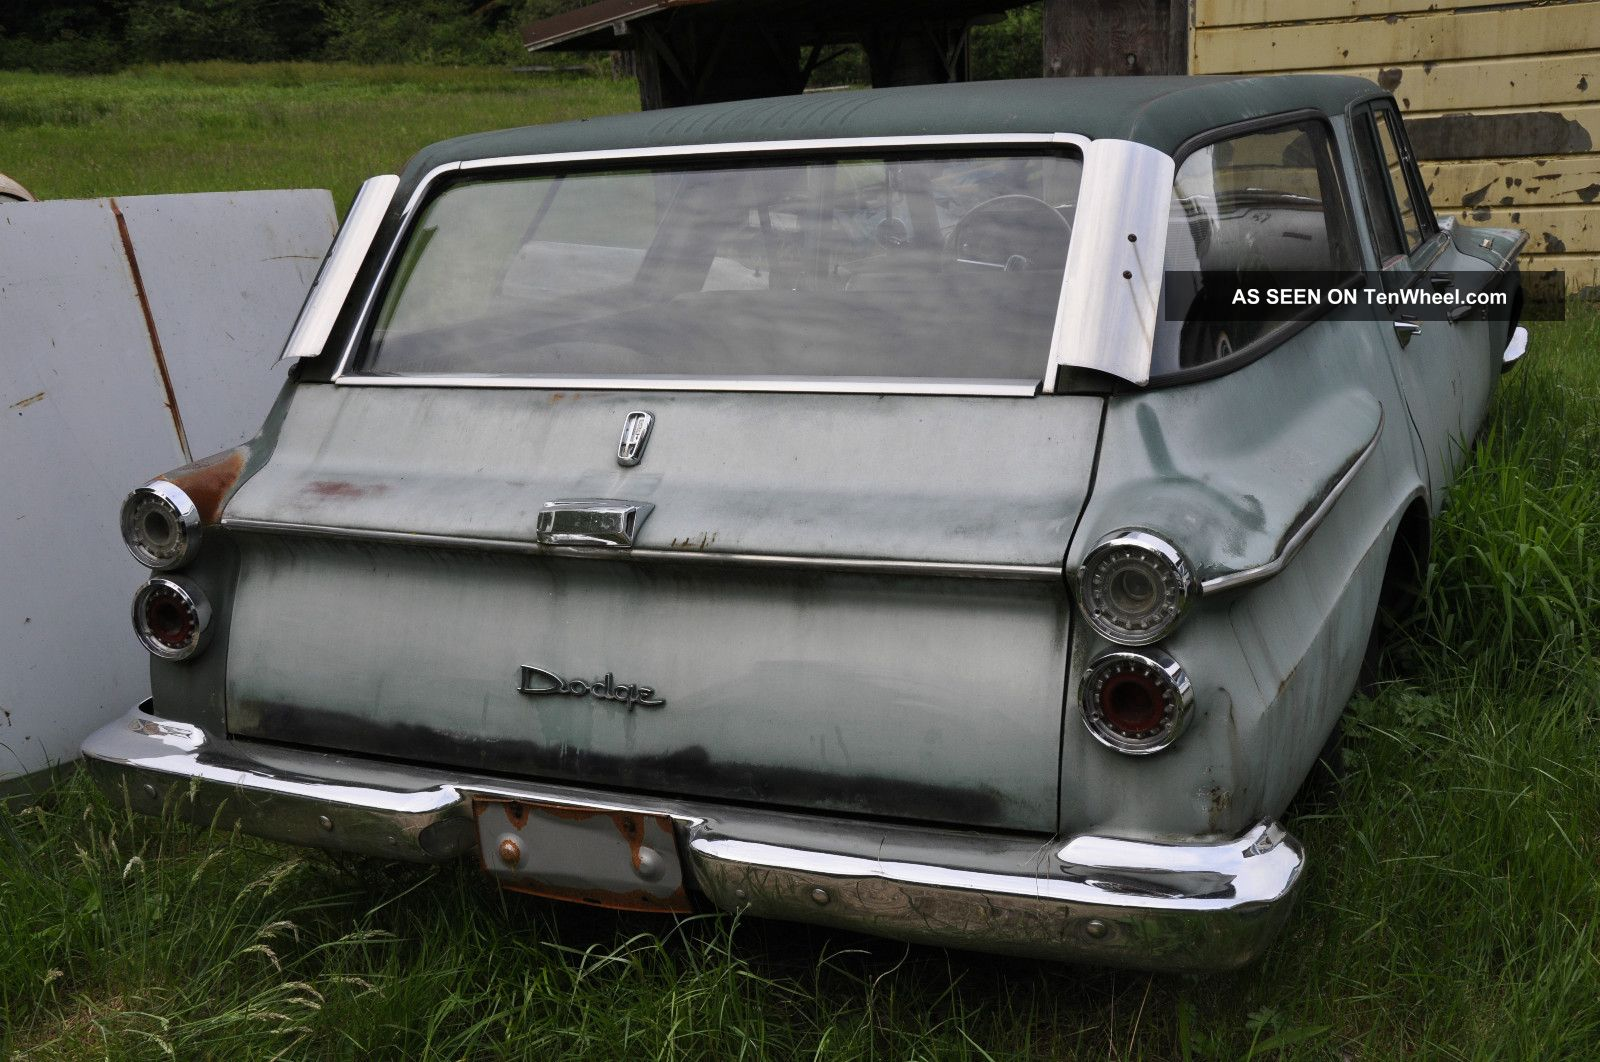 1962 Dodge Dart Station Wagon